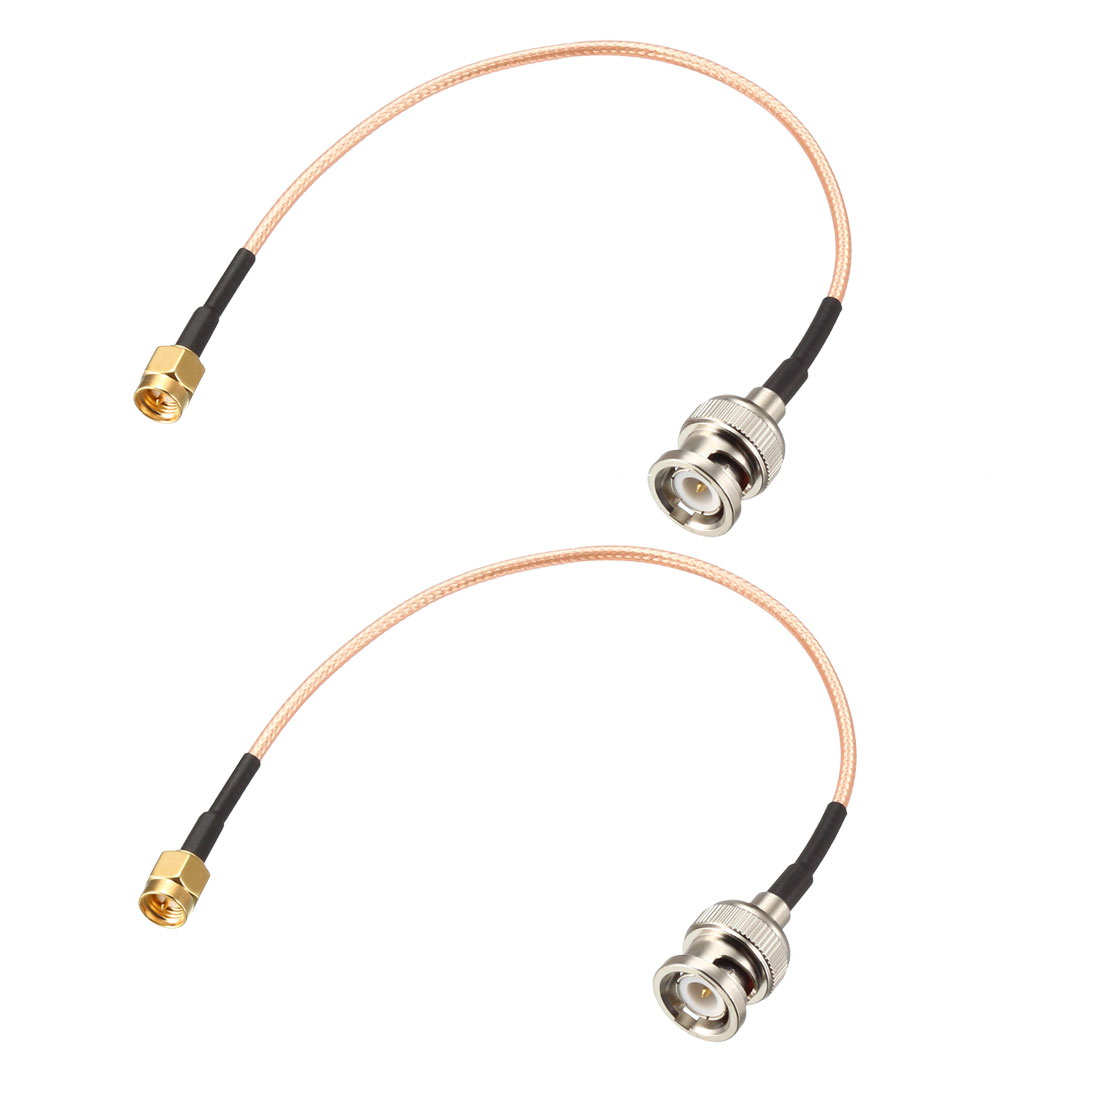 RG316 Coaxial Cable with BNC Male to SMA Male Connectors 50 Ohm 1 Feet 2pcs